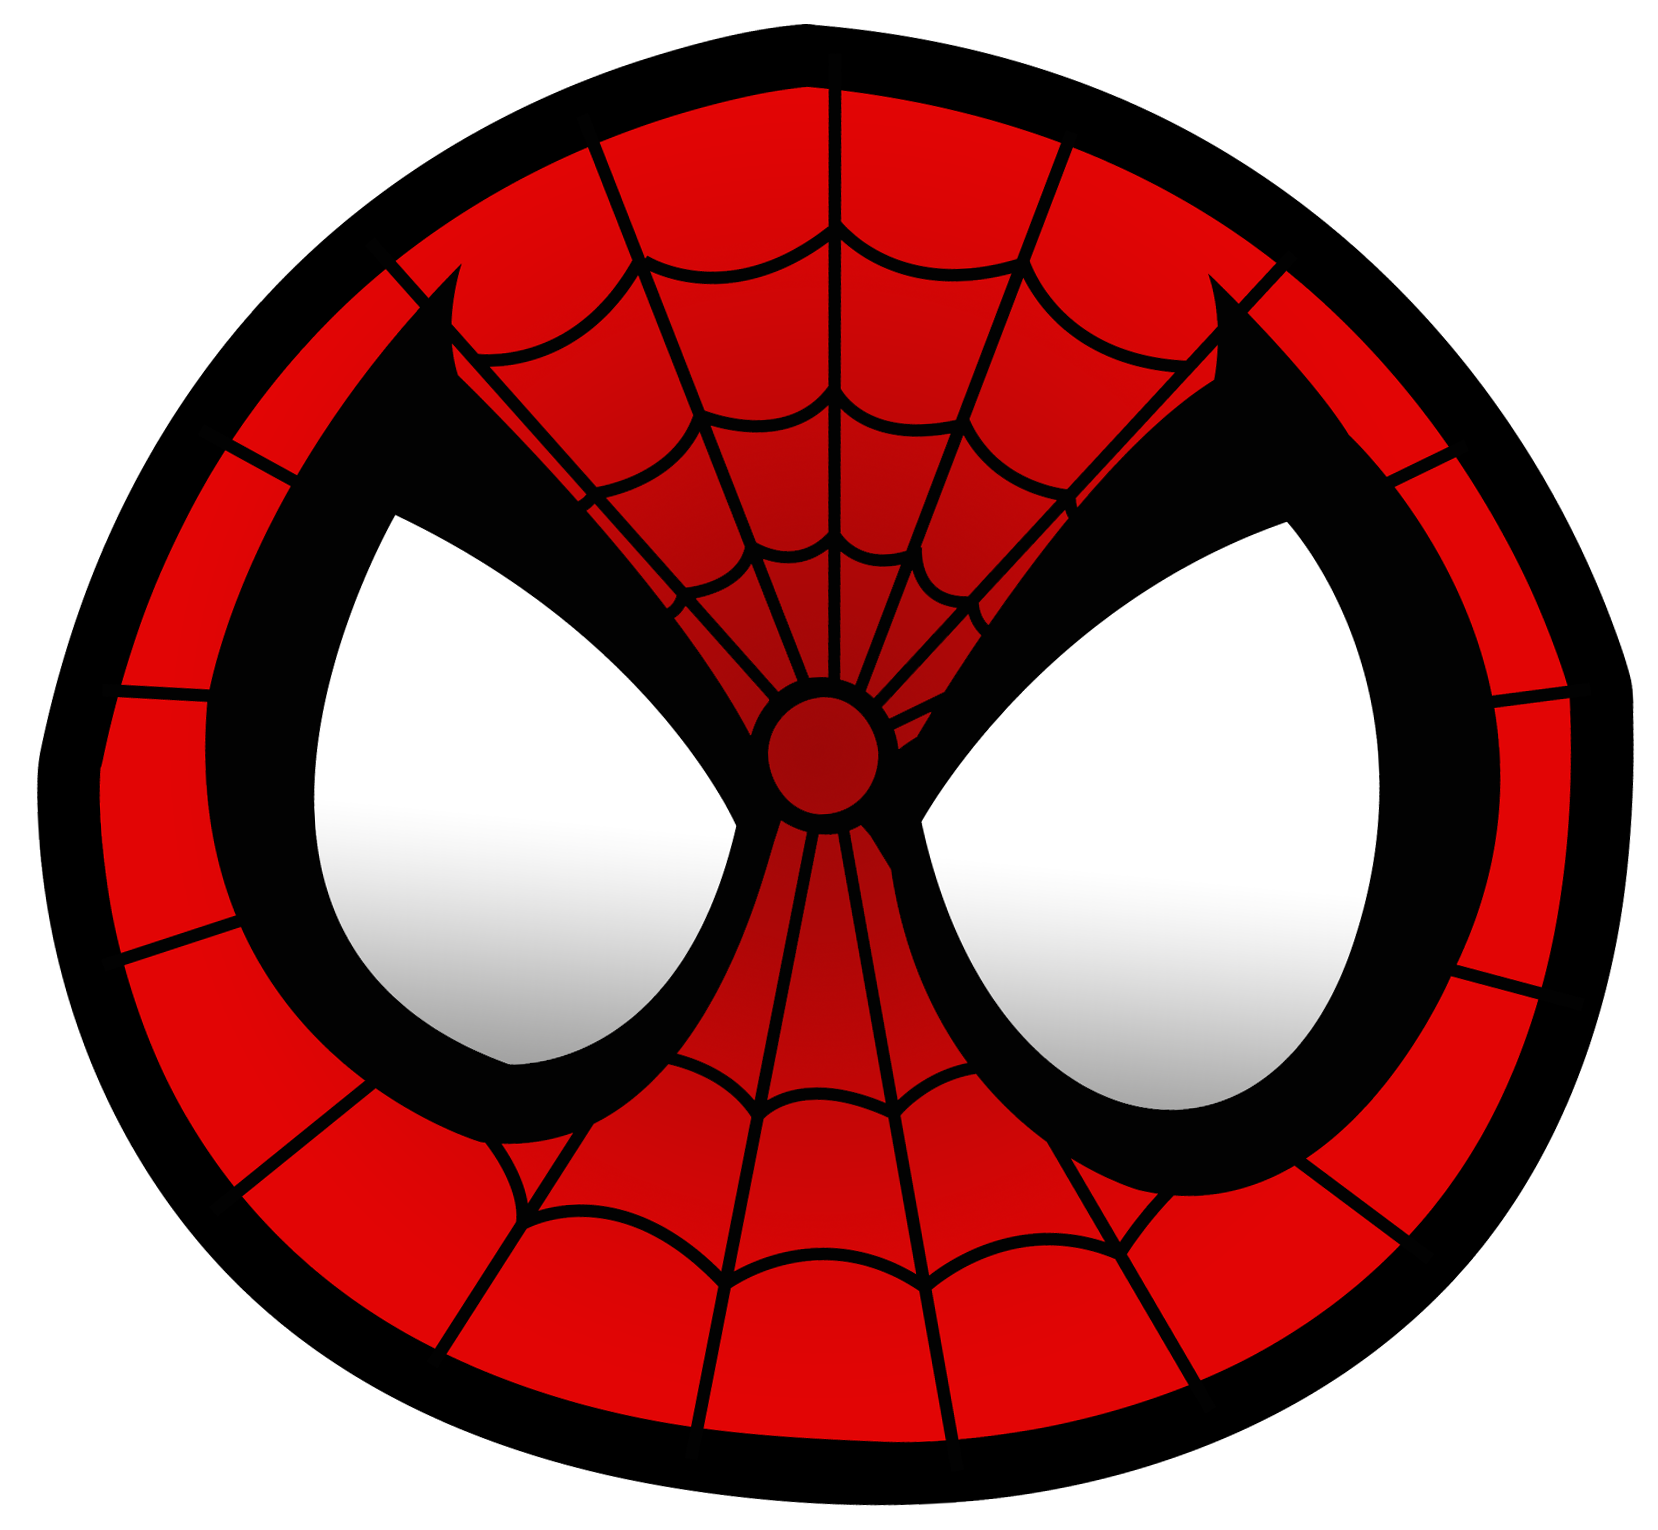 Spiderman face logo - photo#6